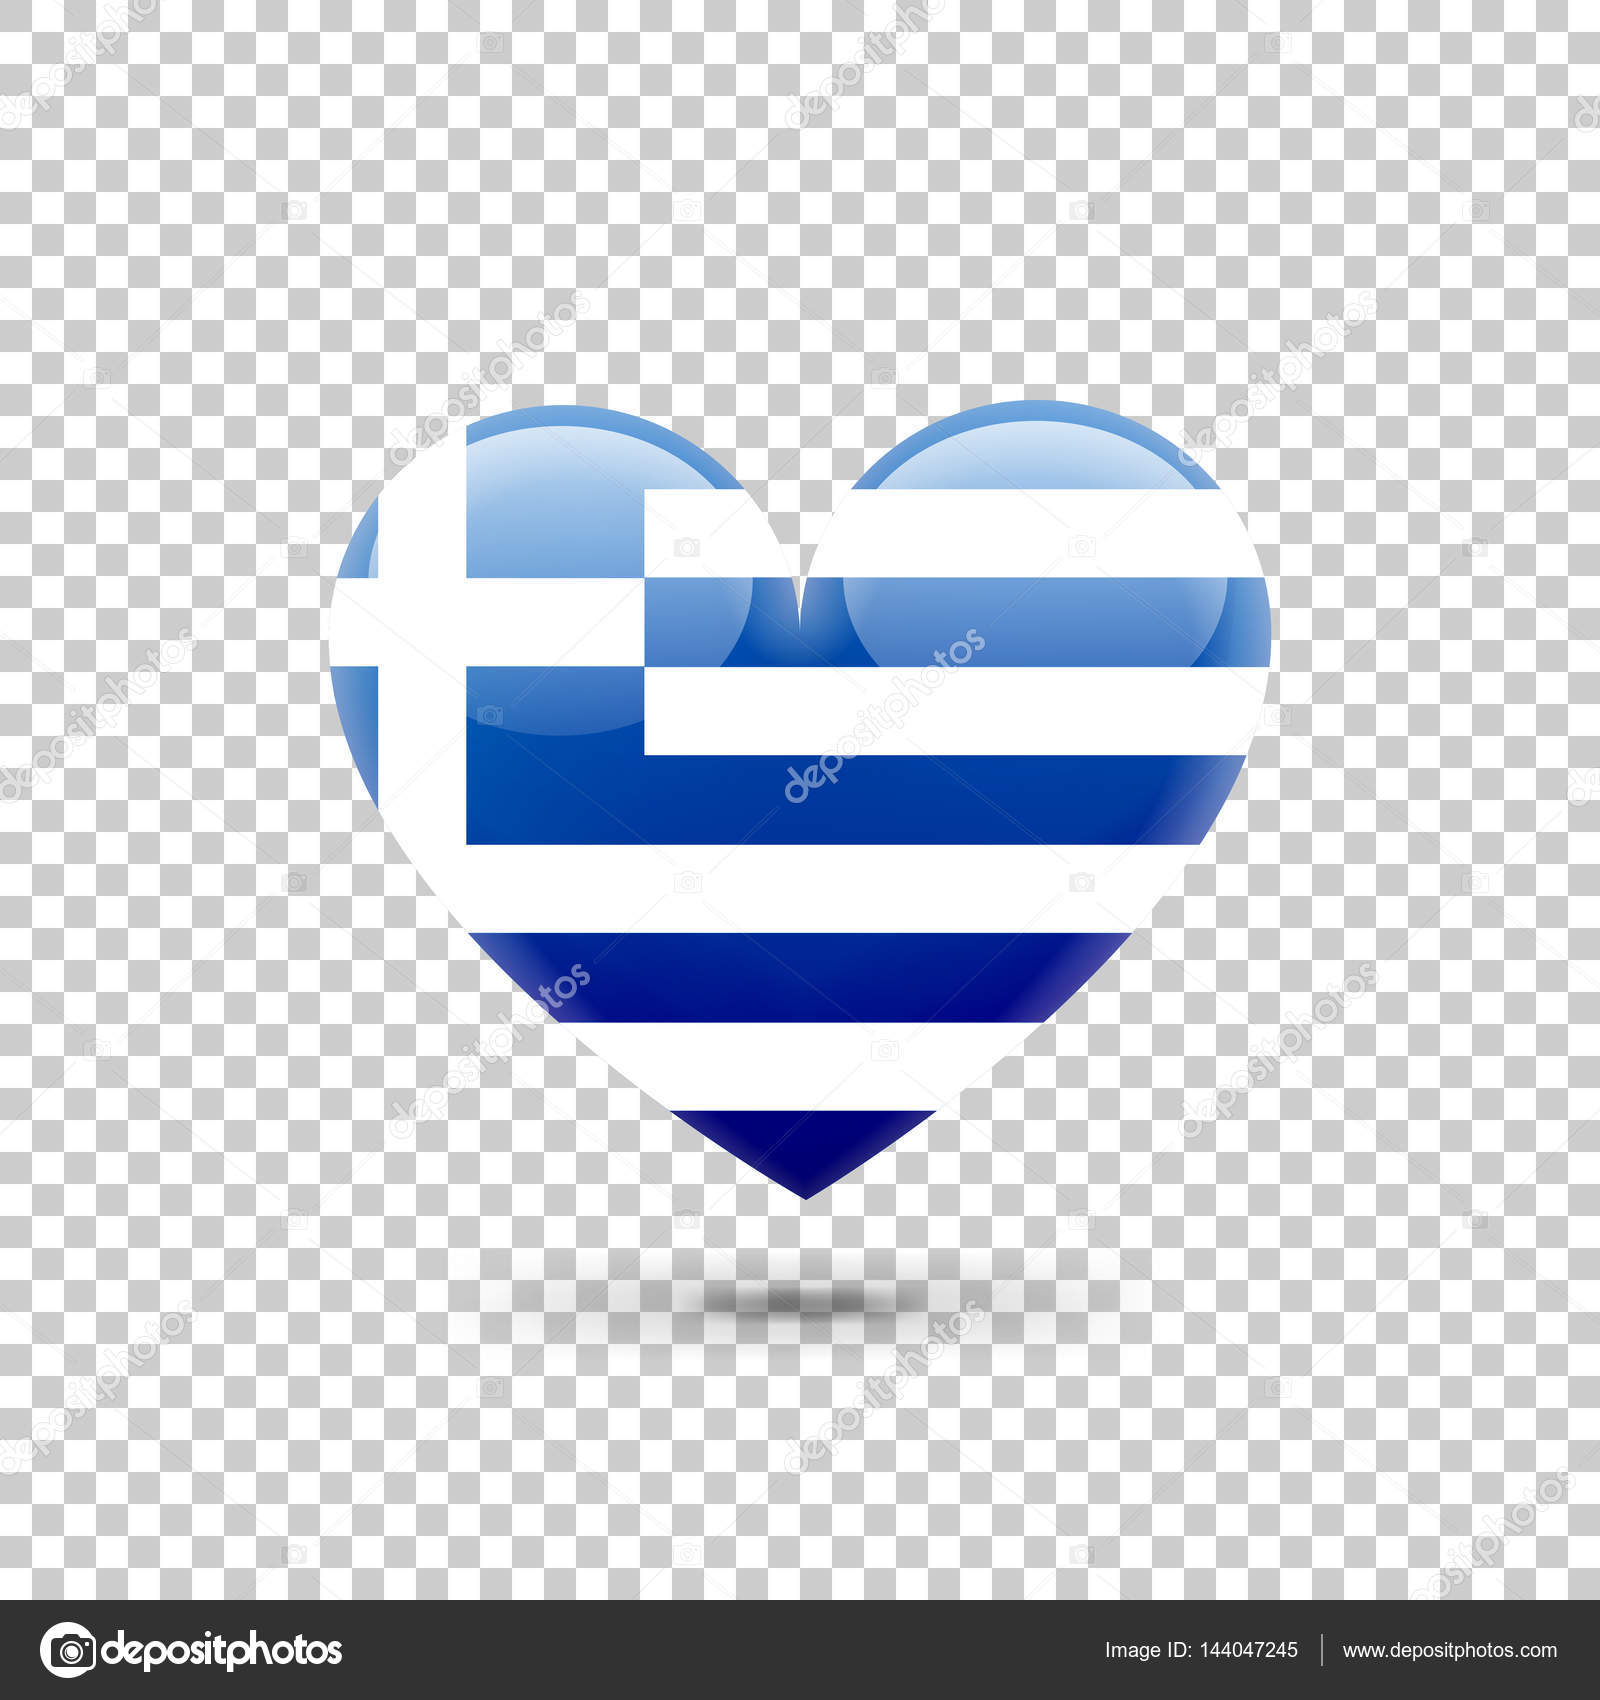 Greek flag heart icon stock vector ober art 144047245 greek flag heart icon stock vector biocorpaavc Image collections